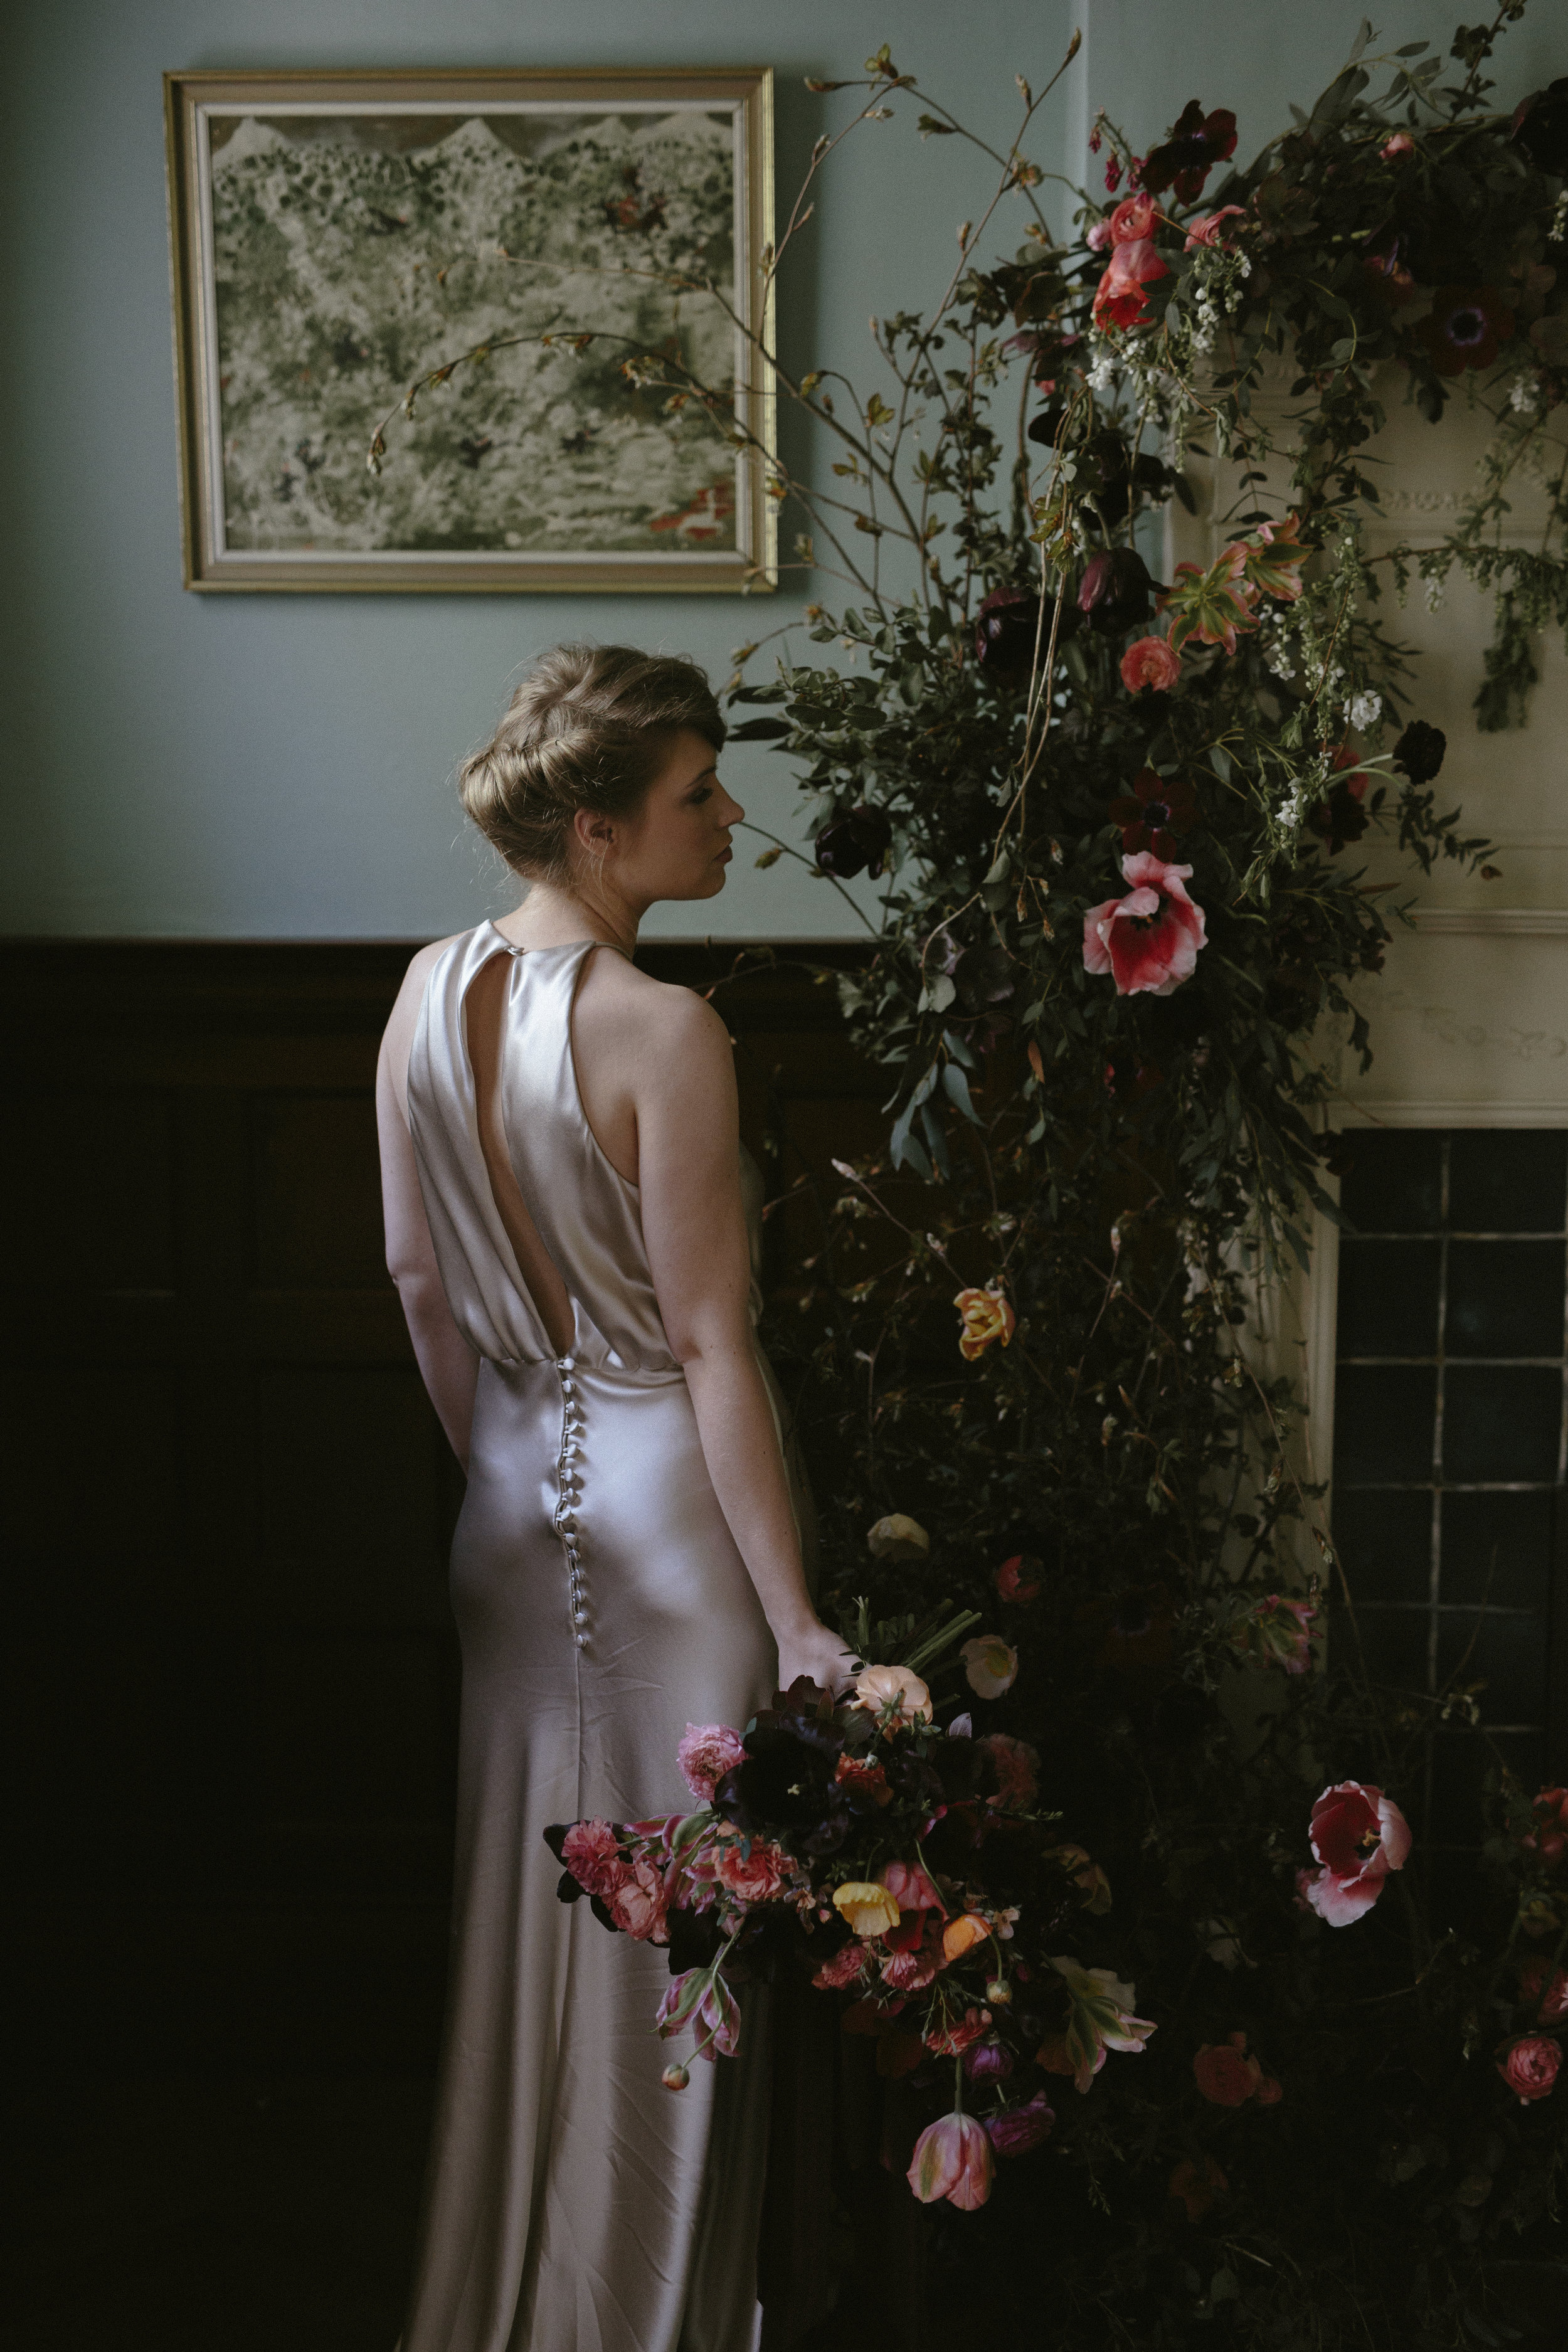 Agnes-and-bee-Kate-Beaumont-wedding-dresses-Ruth-Atkinson-26.jpg